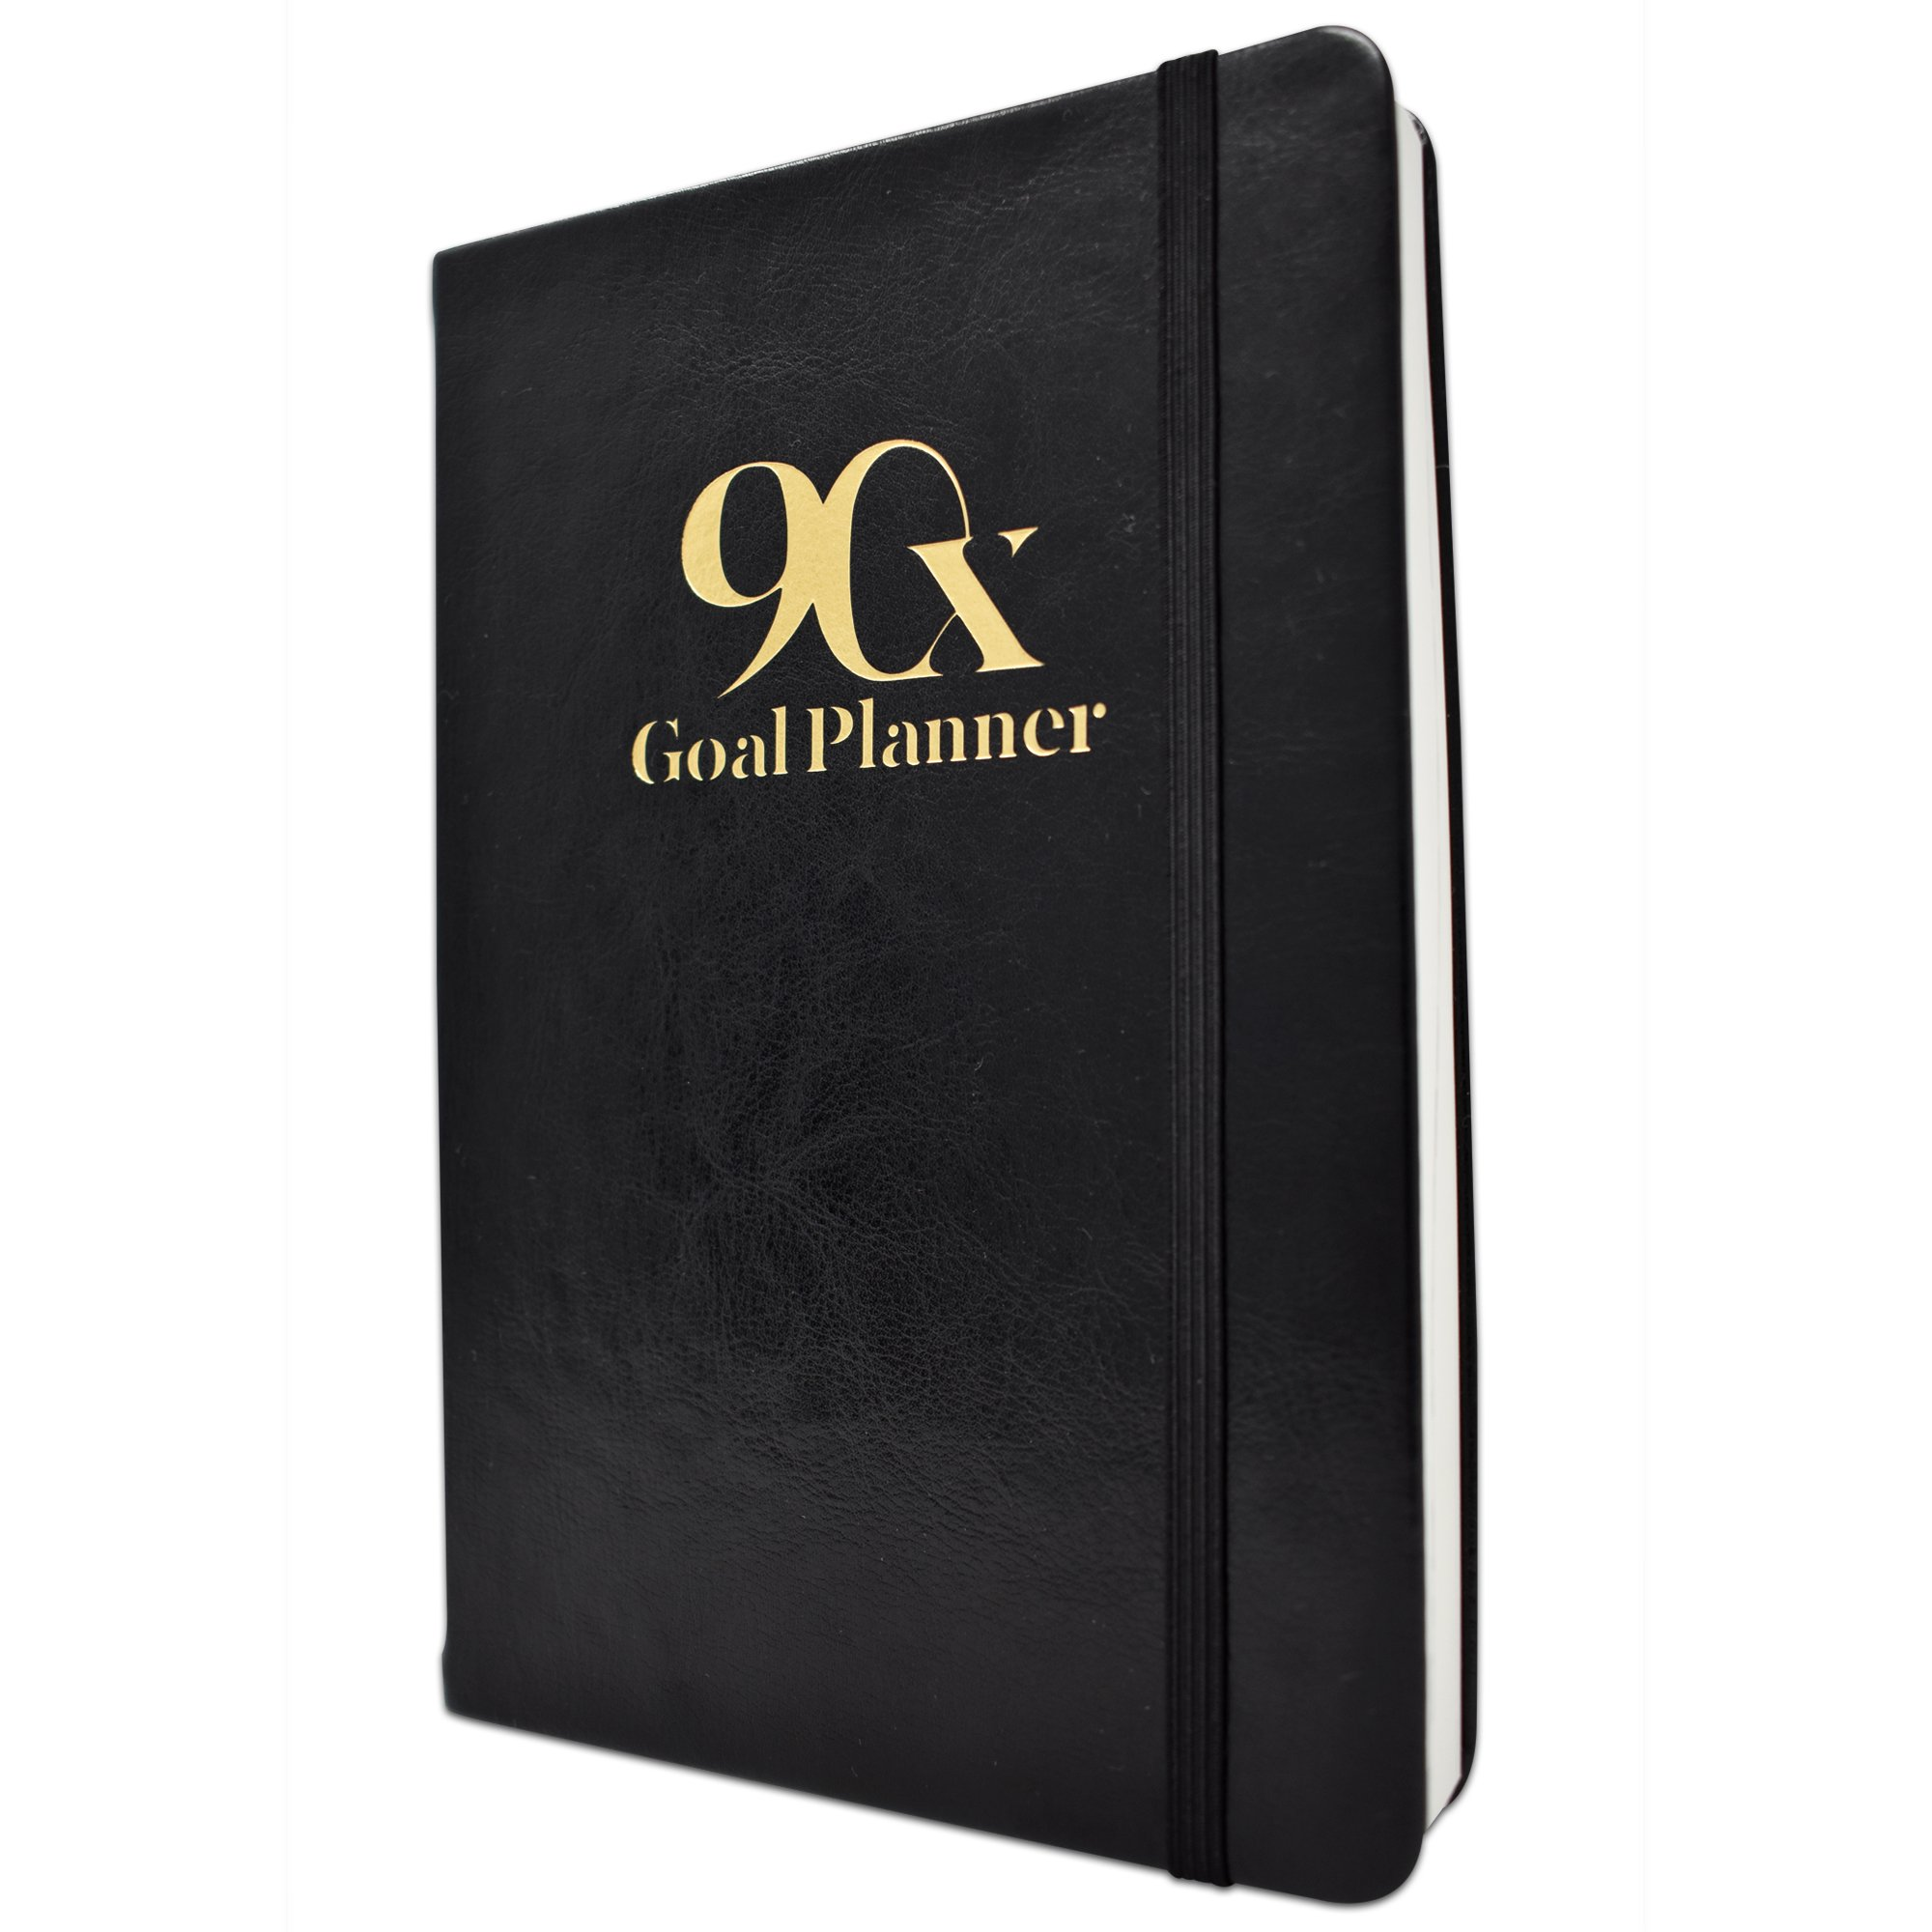 90 Day Goal Planner by 90X - Self Journal for Daily, Weekly, Monthly Planning - Increase Productivity & Time Management - Undated Calendar Days - Includes Vision Board & to Do List (Classic Black)